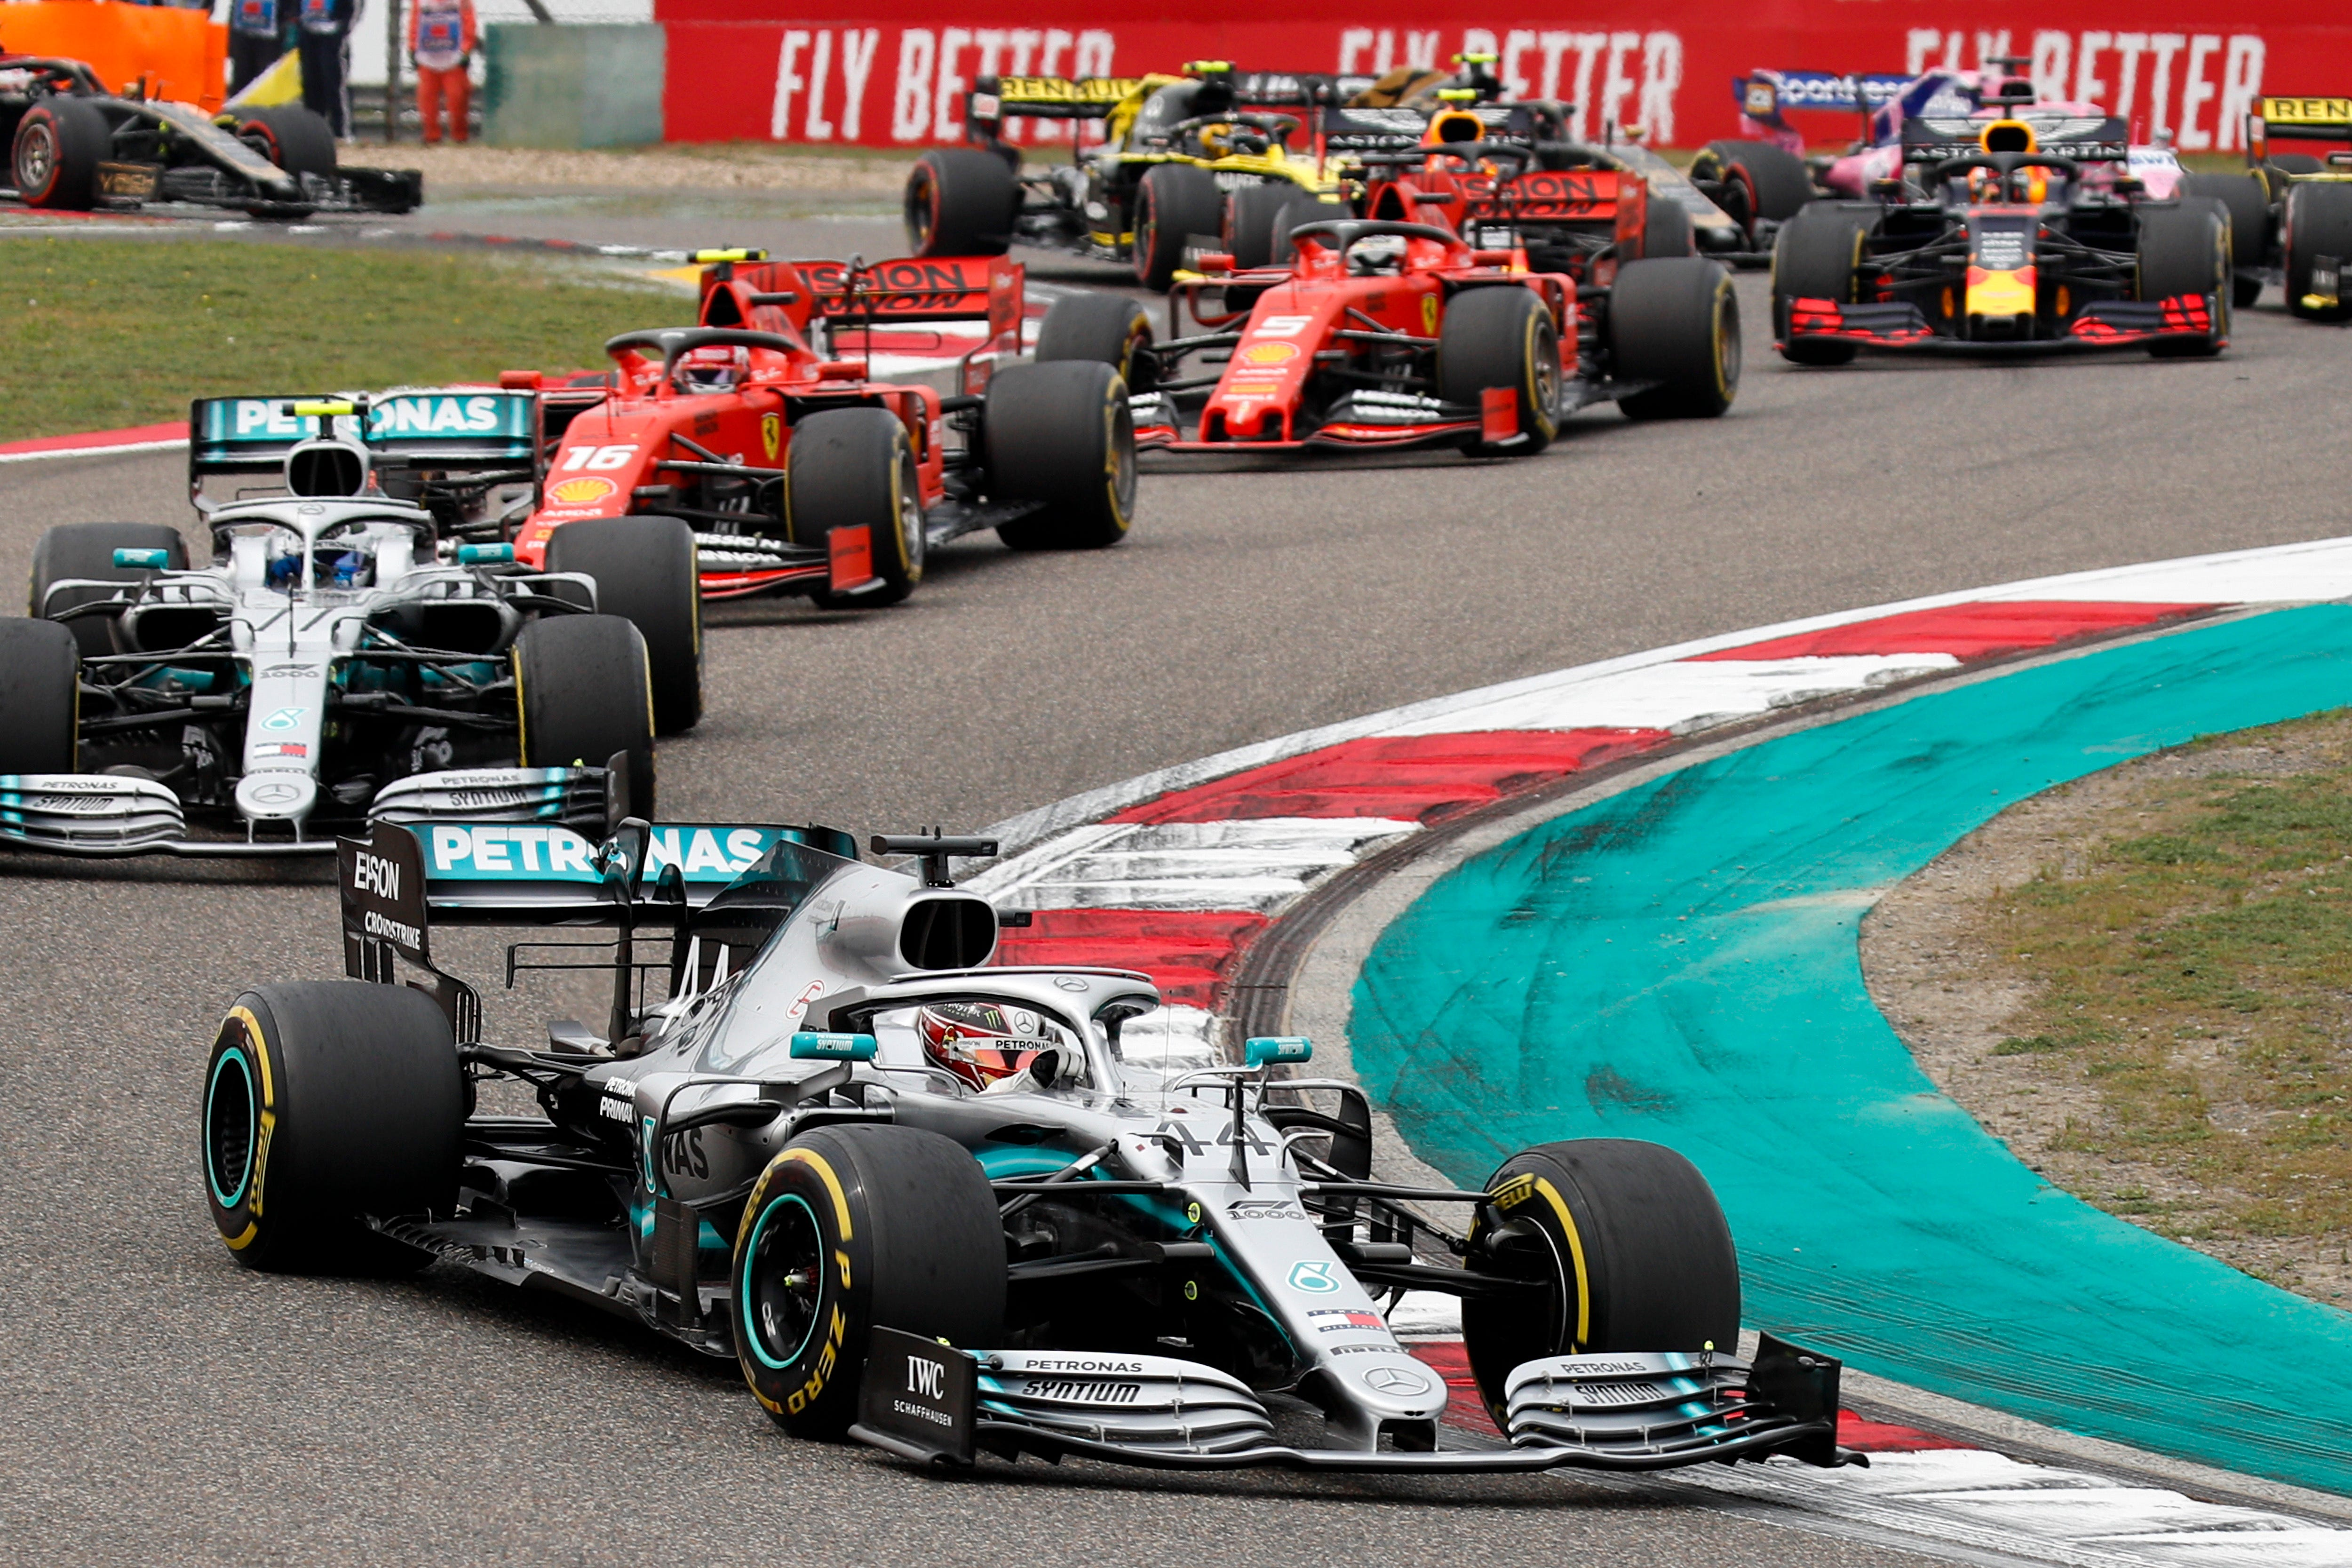 Hamilton wins 6th Chinese GP; pole winner Bottas takes 2nd